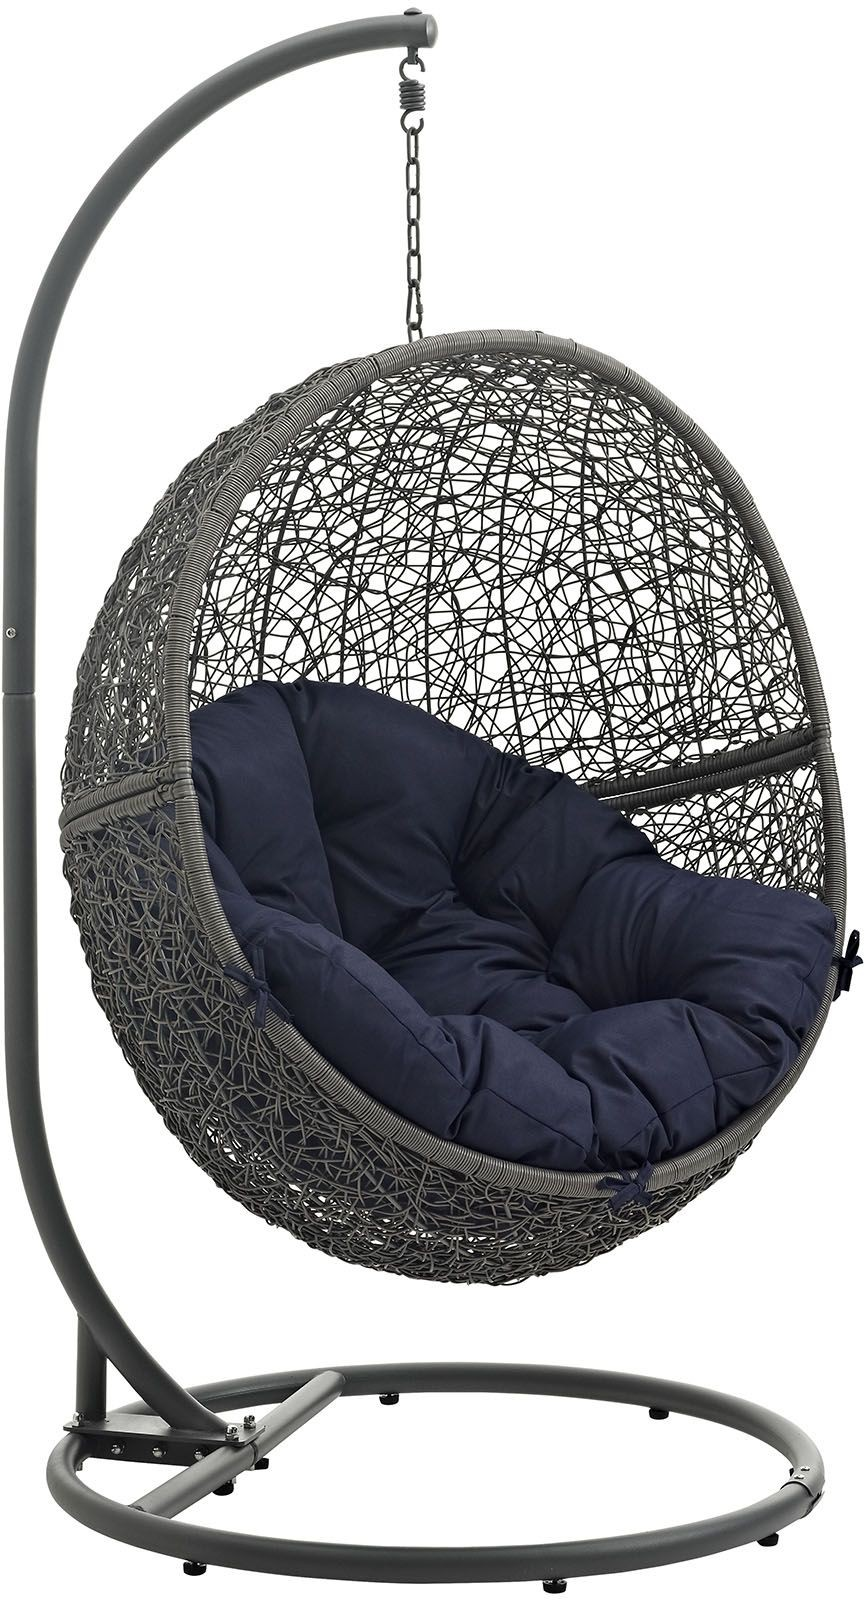 hide gray navy outdoor patio swing chair with stand from renegade coleman furniture. Black Bedroom Furniture Sets. Home Design Ideas